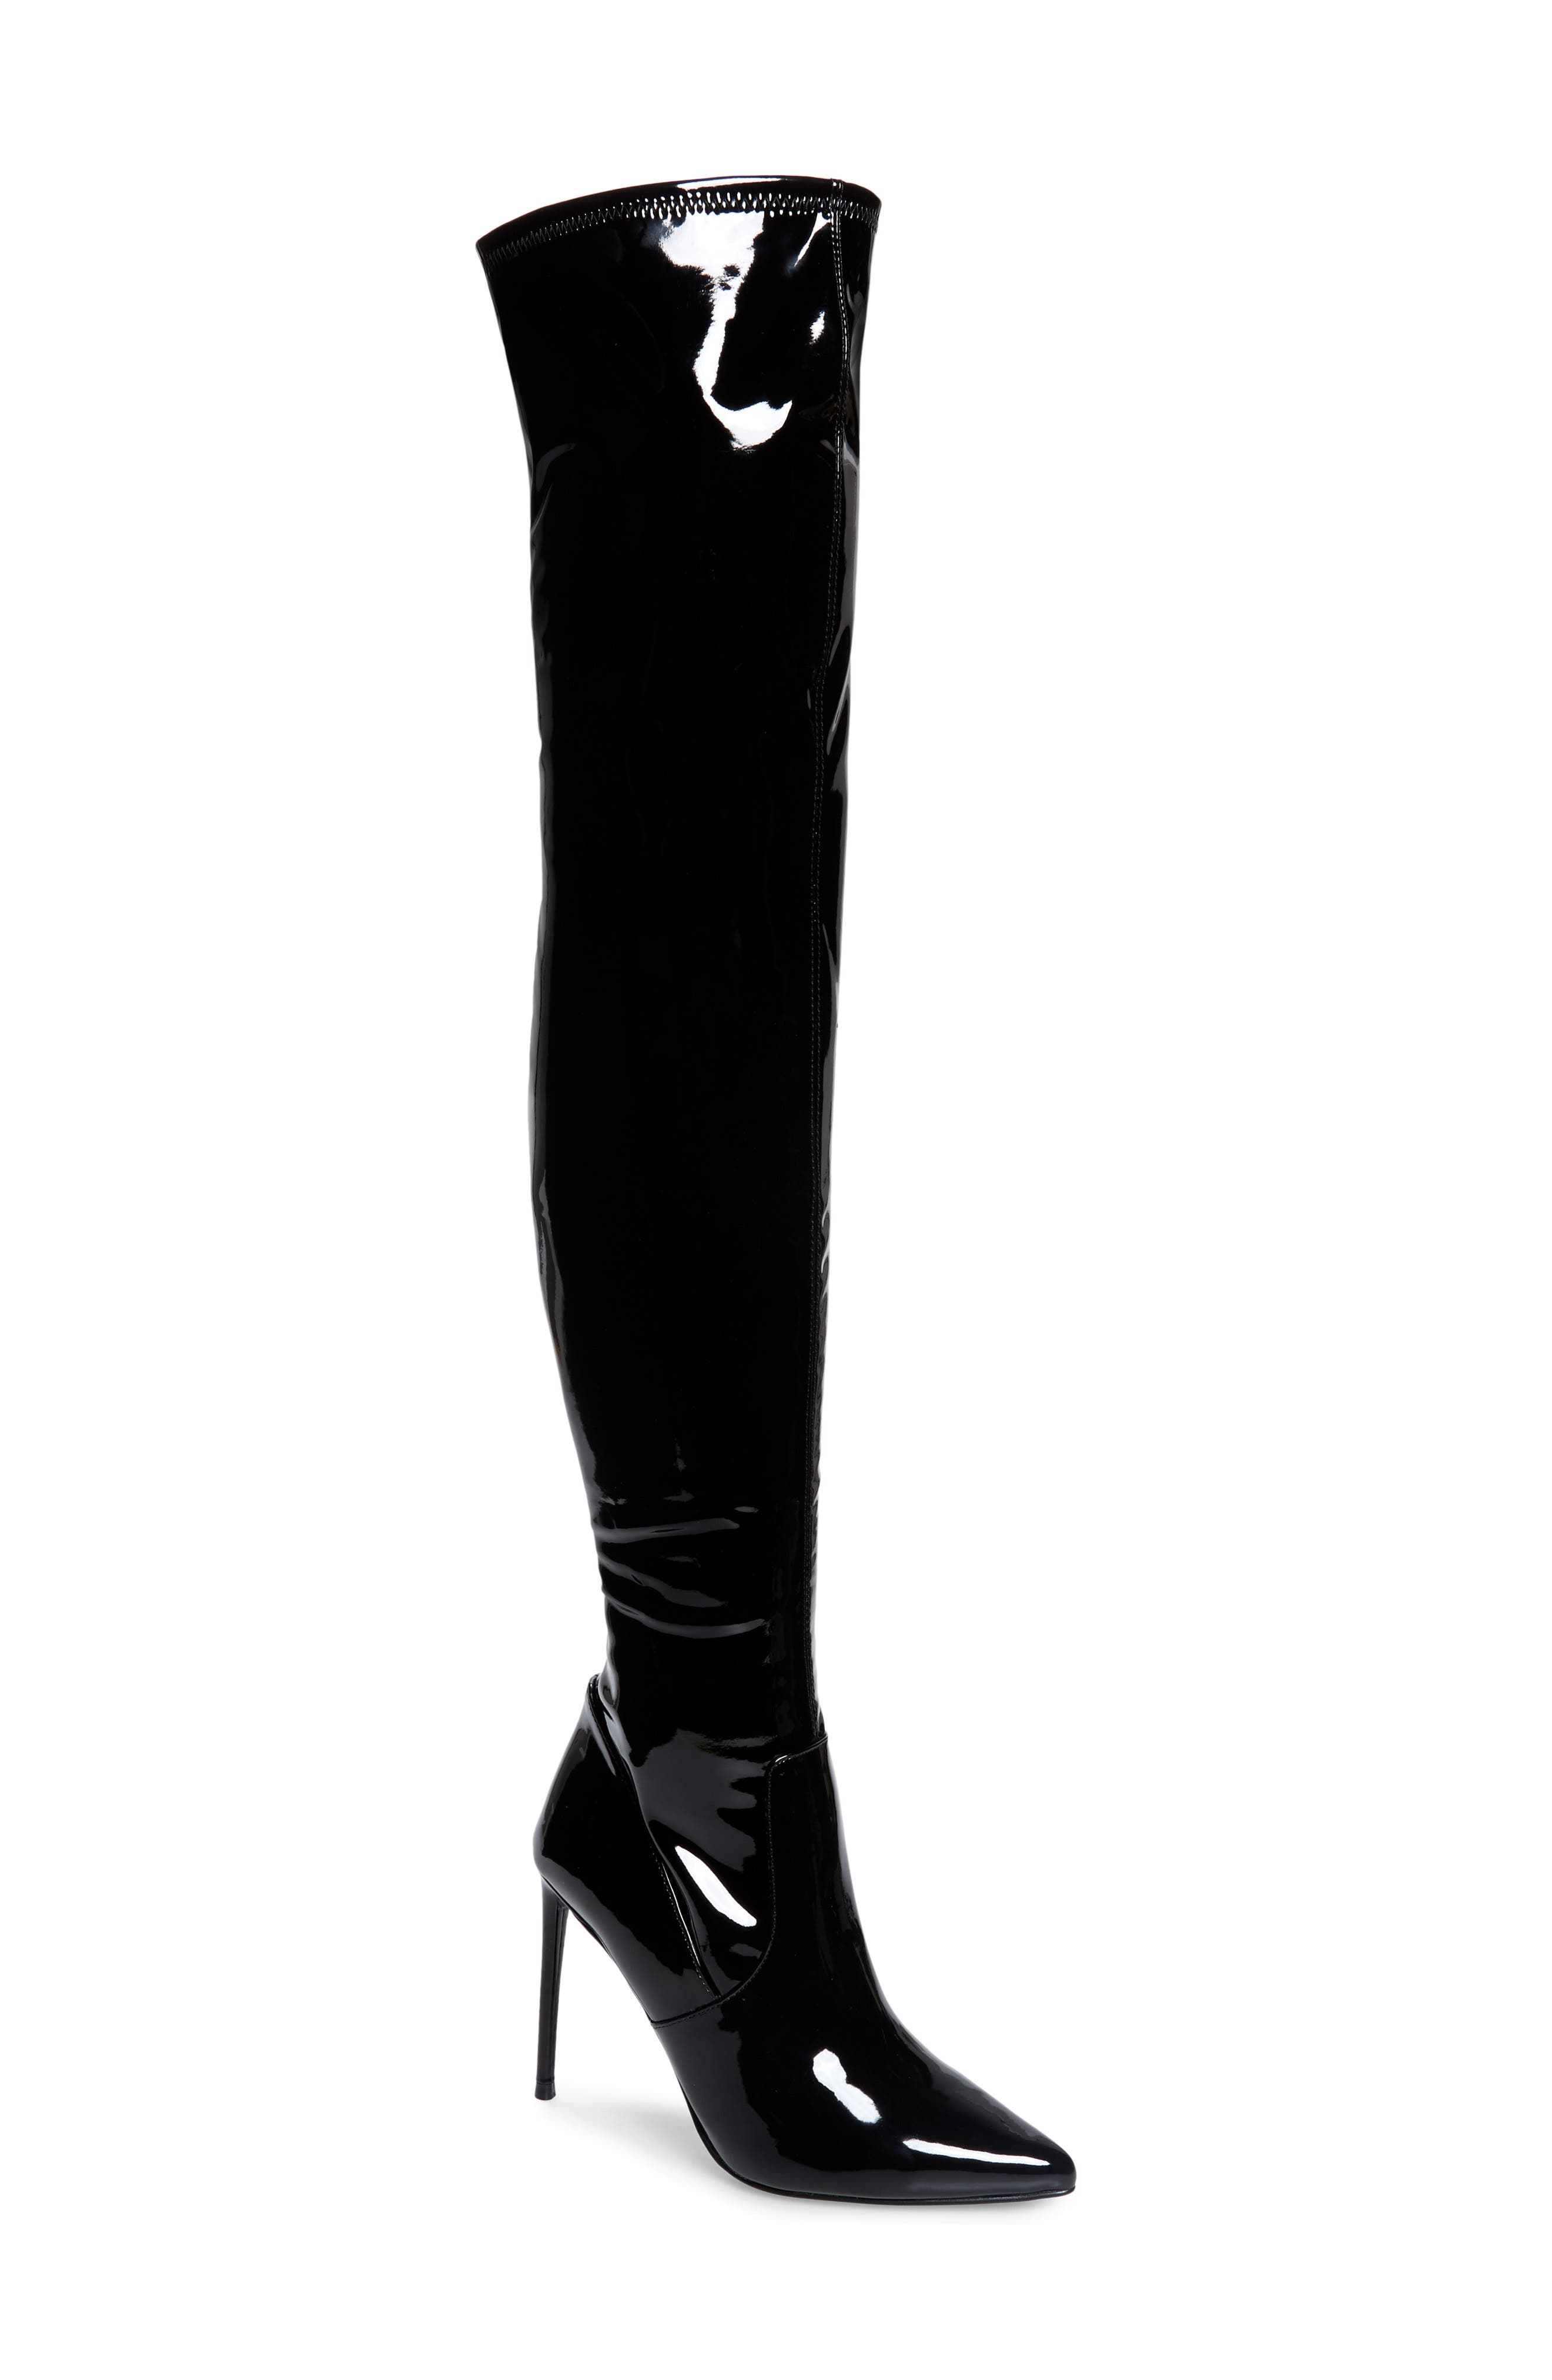 Prepare to turn heads in this pointy-toe, over-the-knee boot that looks super sleek from the stretchy topline to the towering stiletto heel. Style Name: Steve Madden Viktory Over The Knee Boot (Women). Style Number: 6094759. Available in stores.